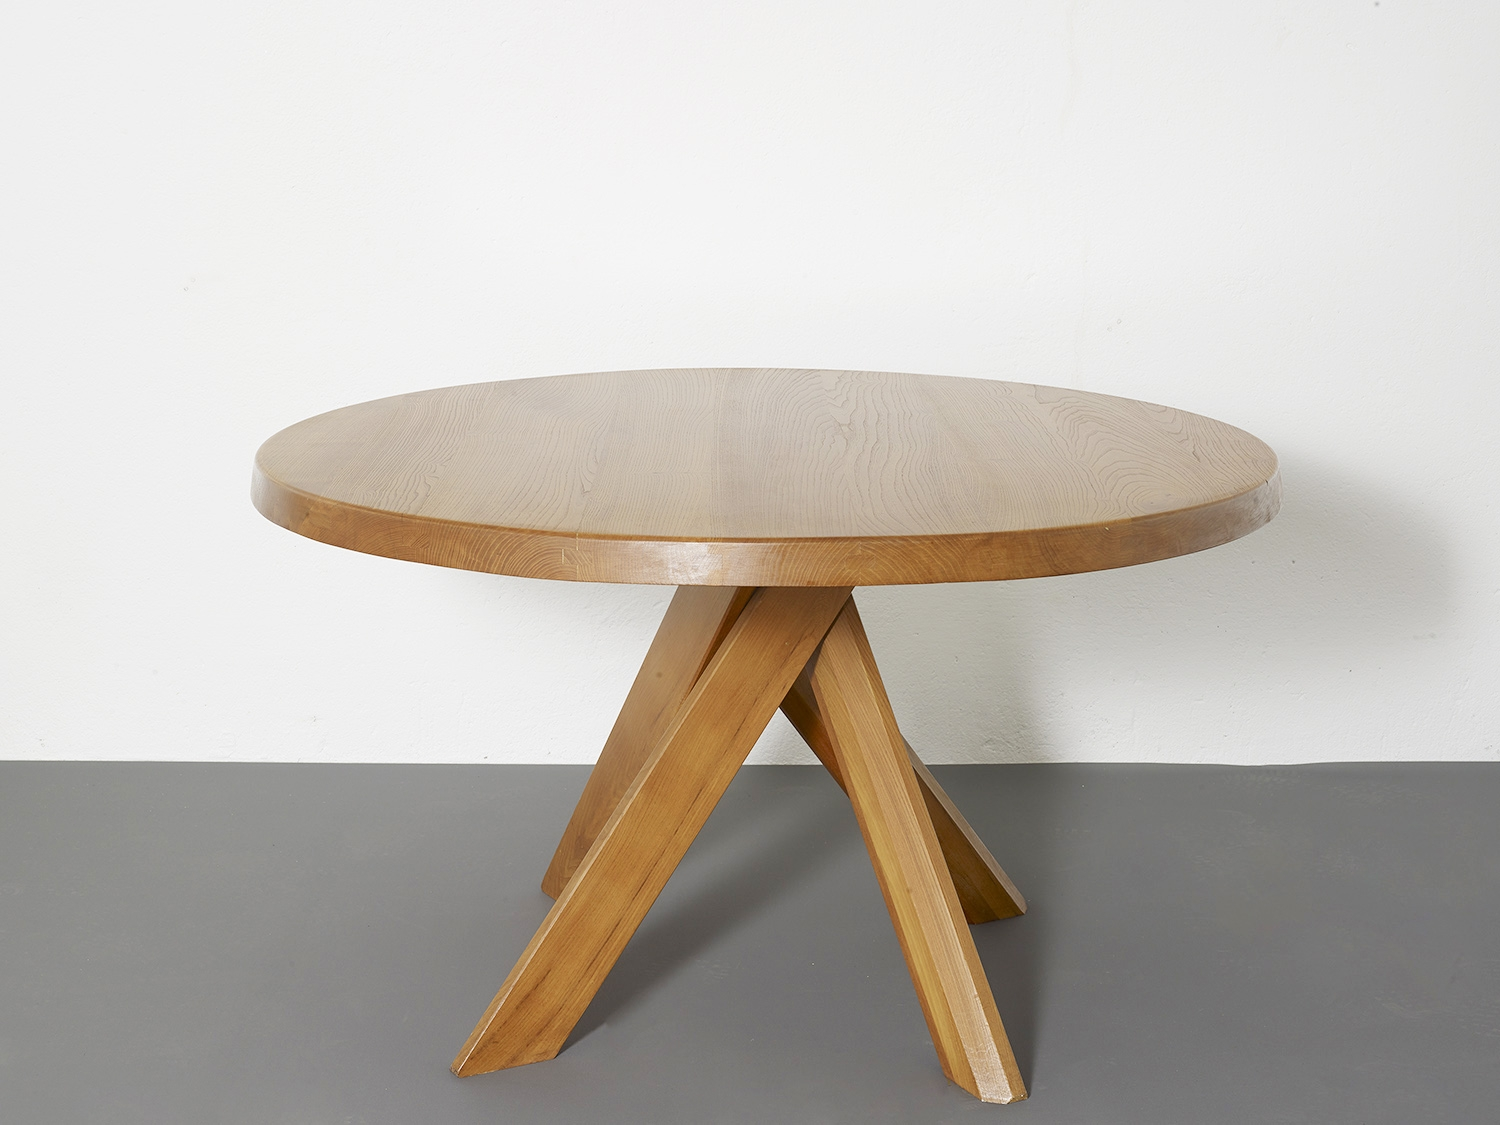 t21c-dining-table-by-pierre-chapo-image-01